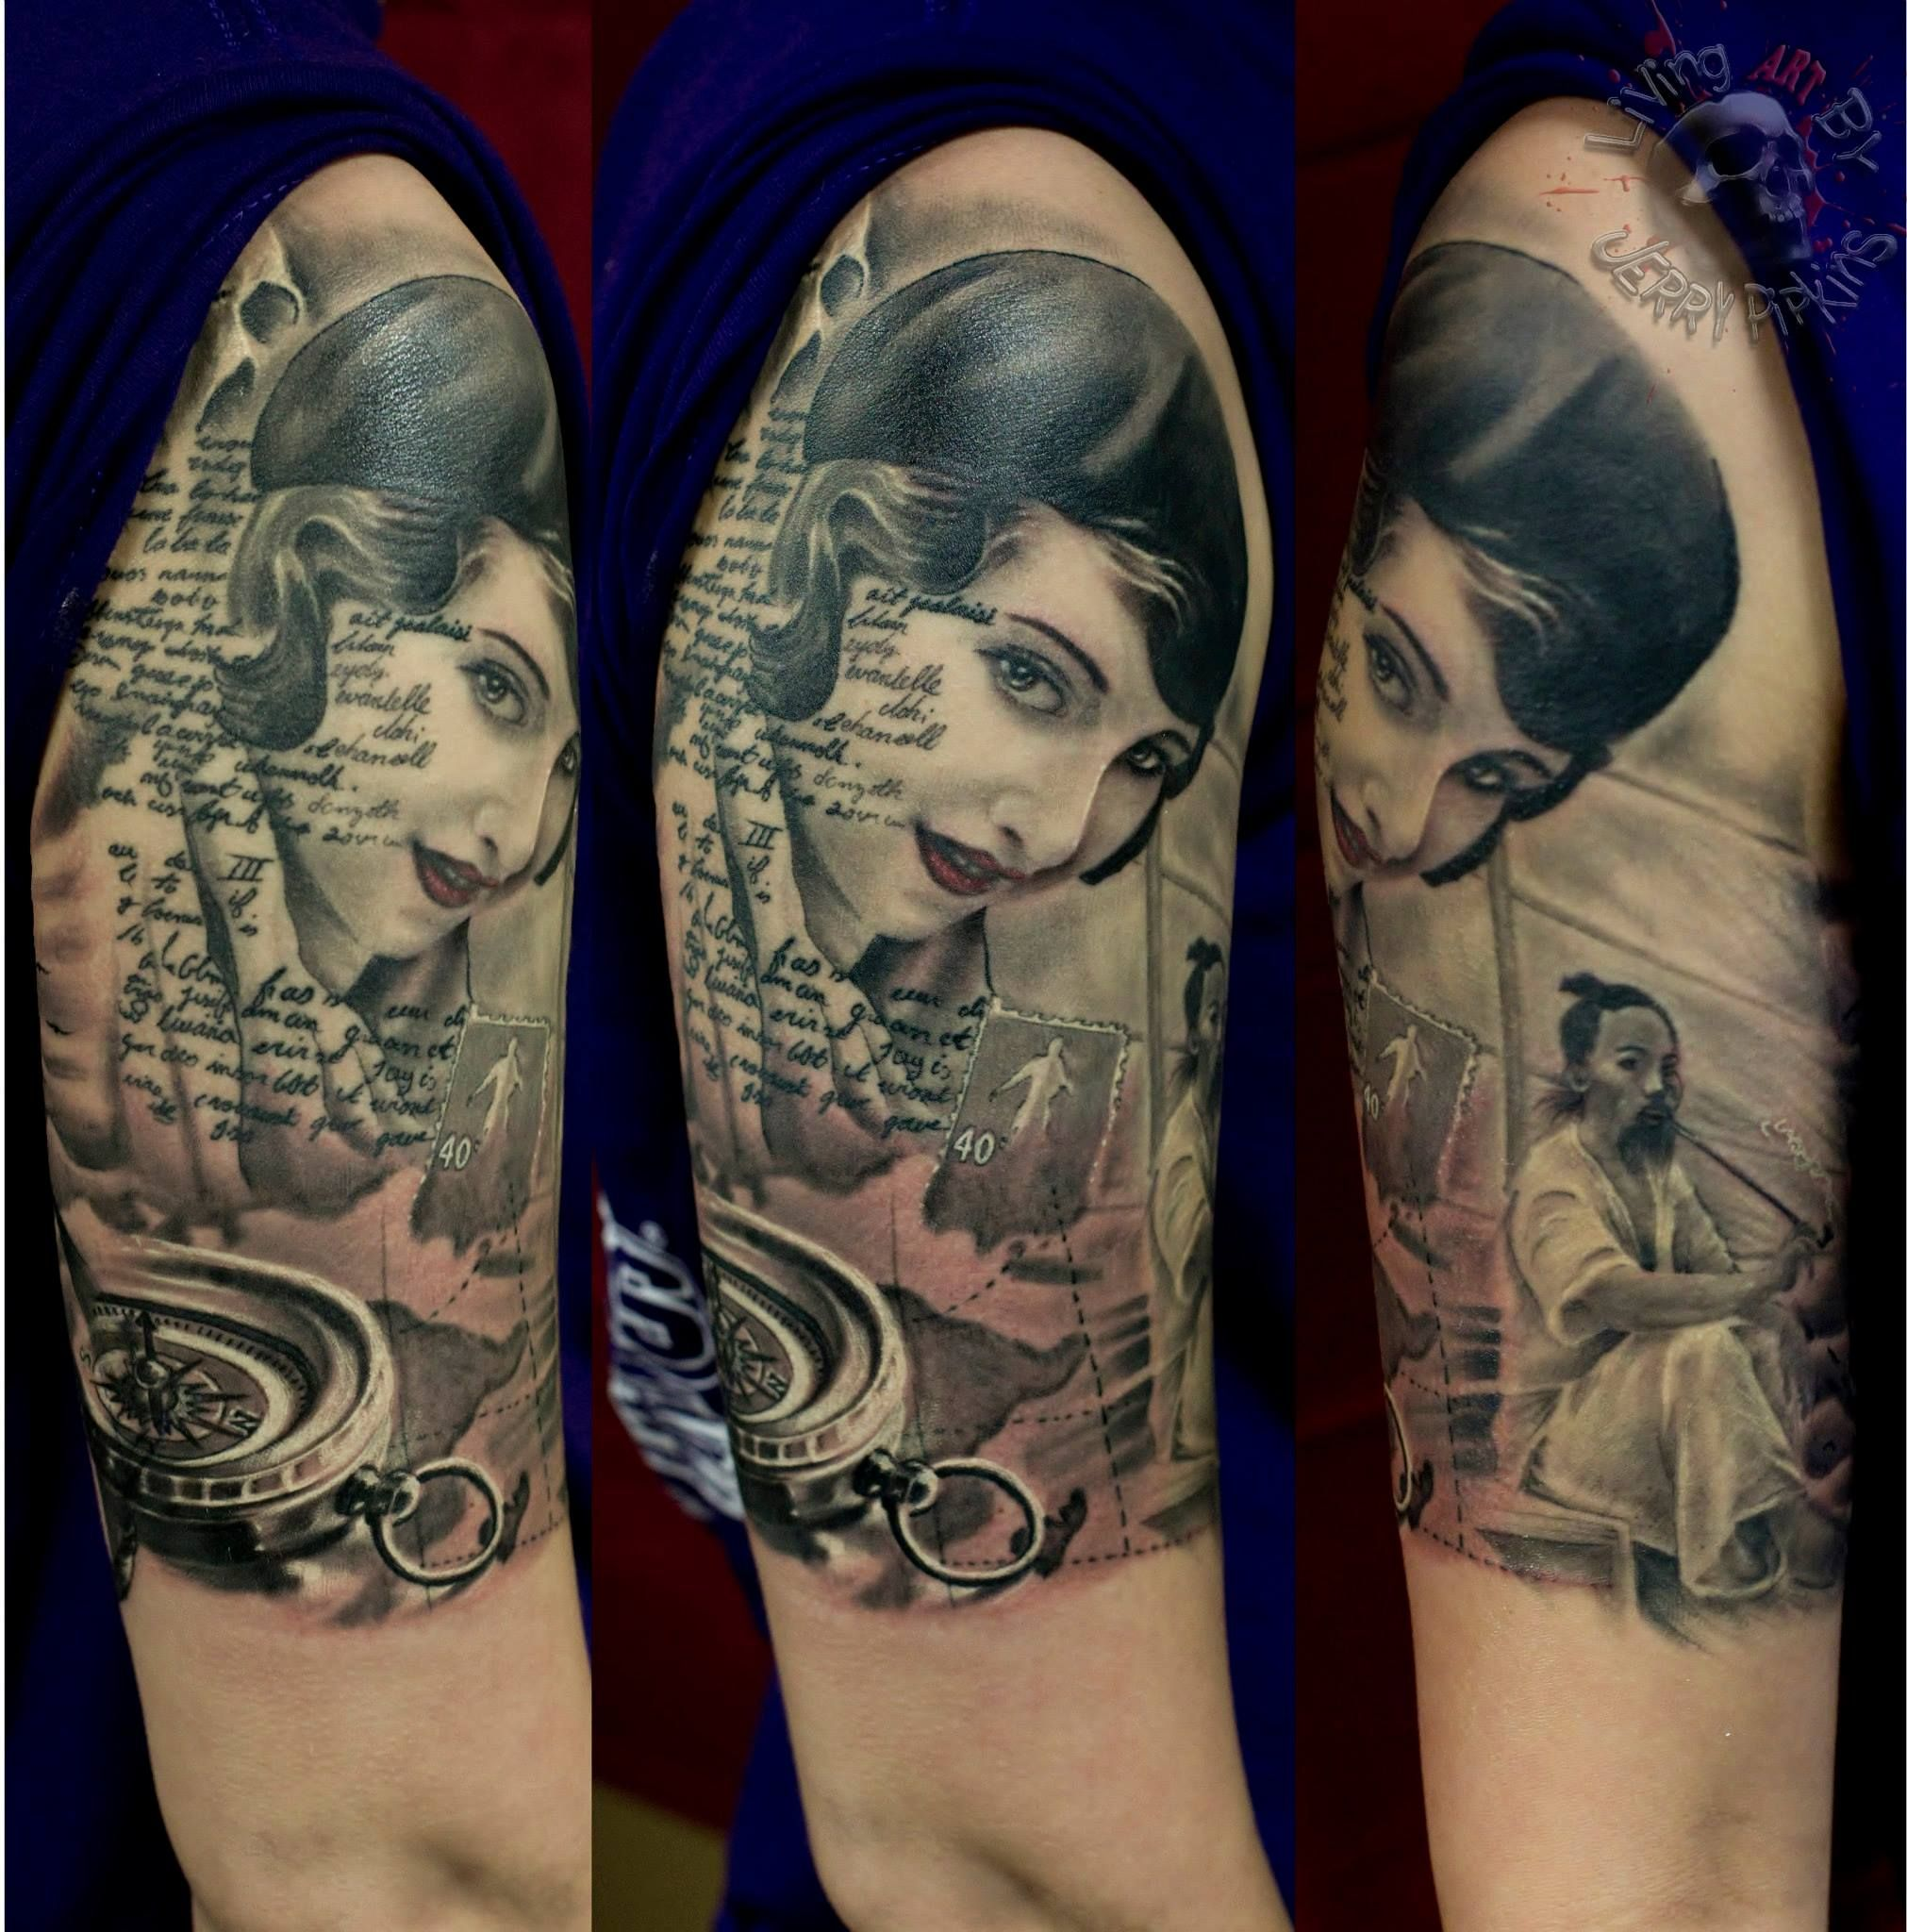 Done by our artist jerry pipkins tattoo shop tattoos